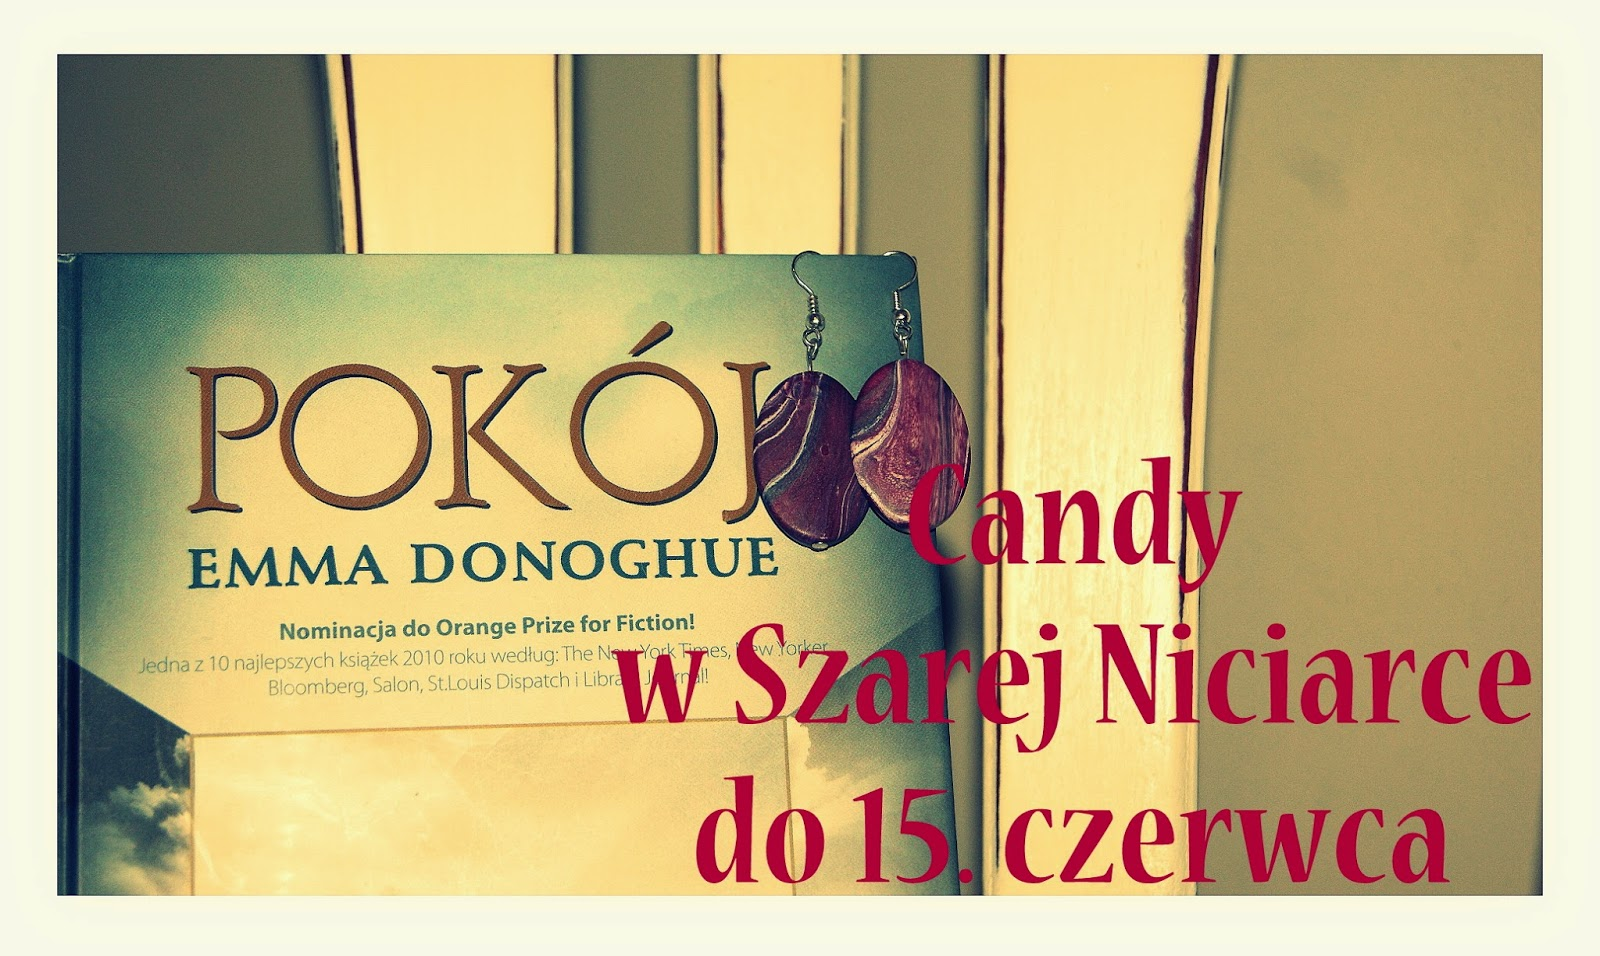 Candy w Szarej Niciarce